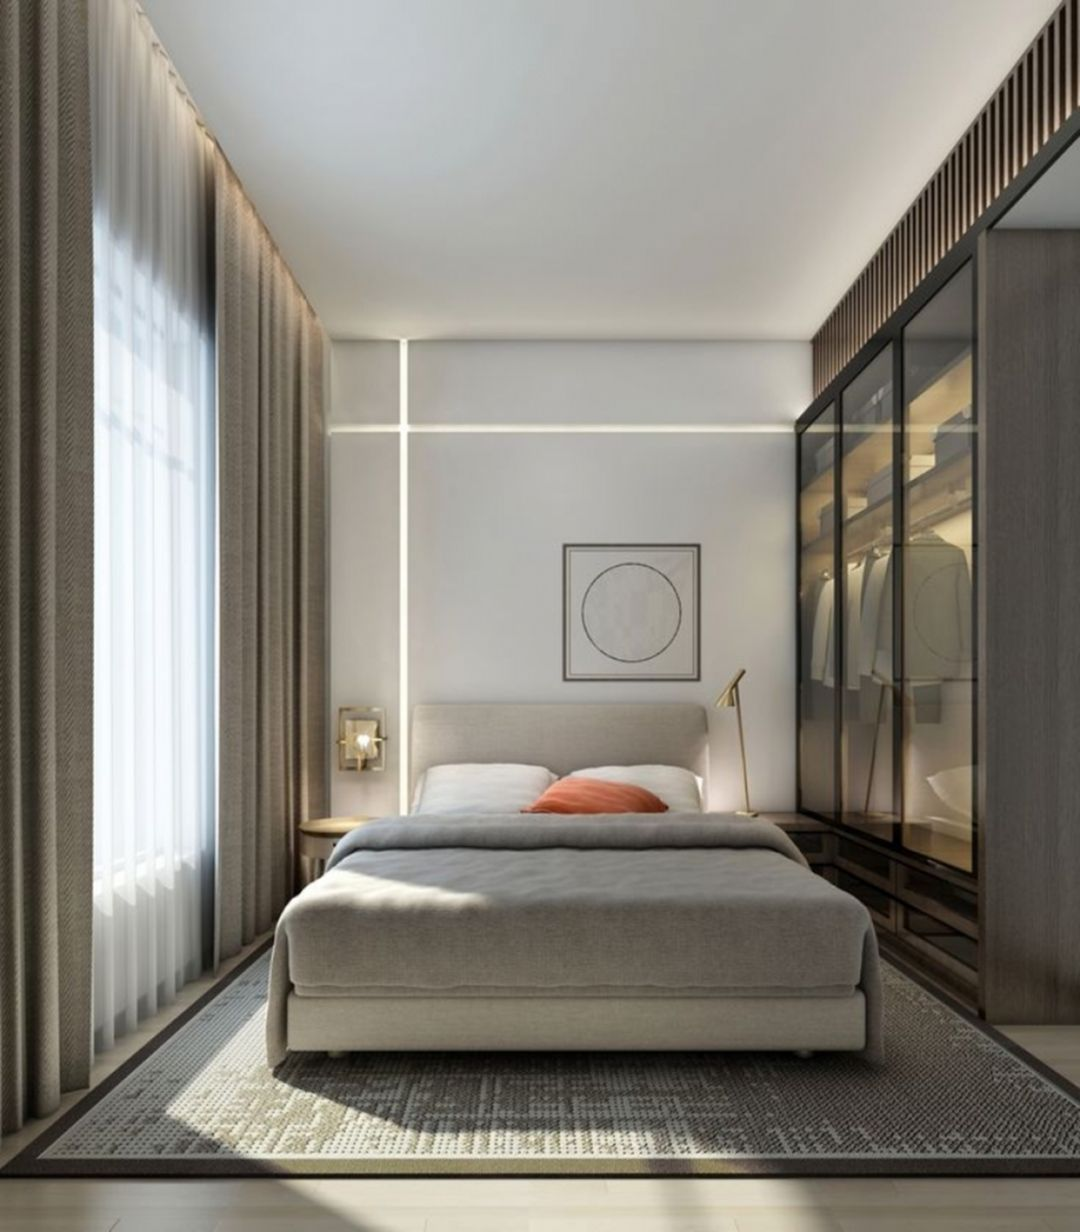 20 Beautiful And Comfortable Modern Style Bedroom Designs Apartment Bedroom Decor Modern Bedroom Design Small Master Bedroom Modern apartment bedroom ideas